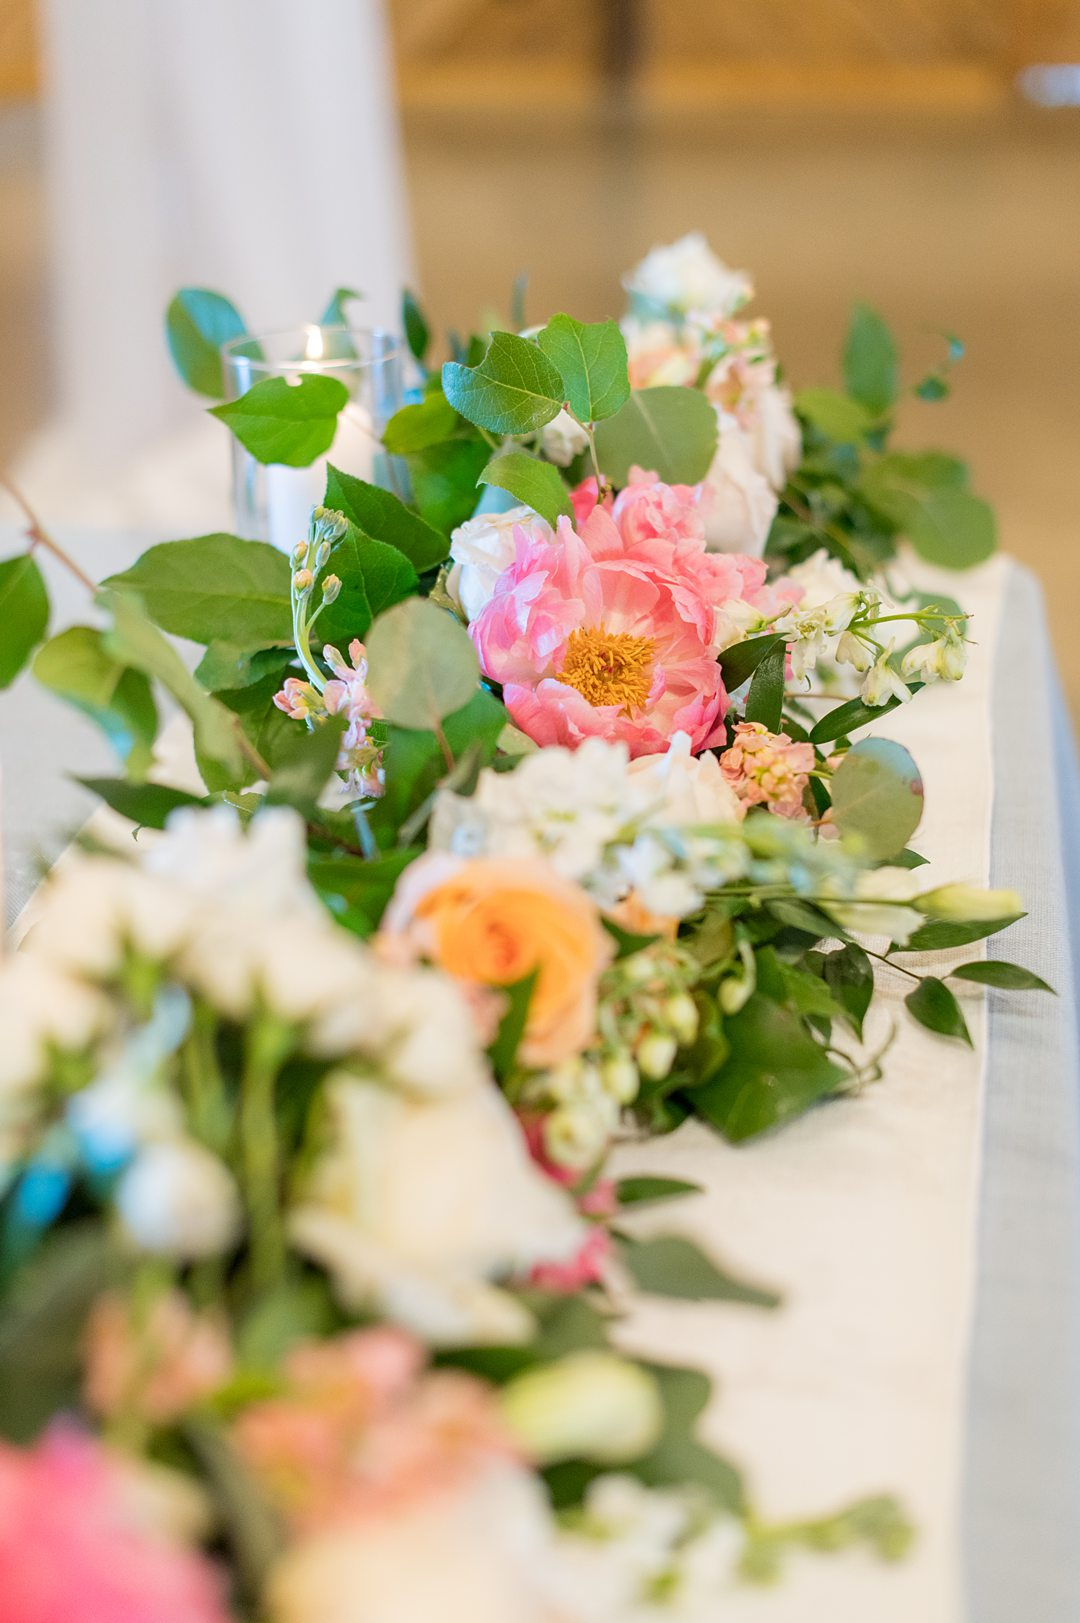 Photos of the table flowers taken by Mikkel Paige Photography for a summer wedding at The Lodge at Mount Ida farm. #peonies #mikkelpaige #weddingreception #charlottesvillewedding